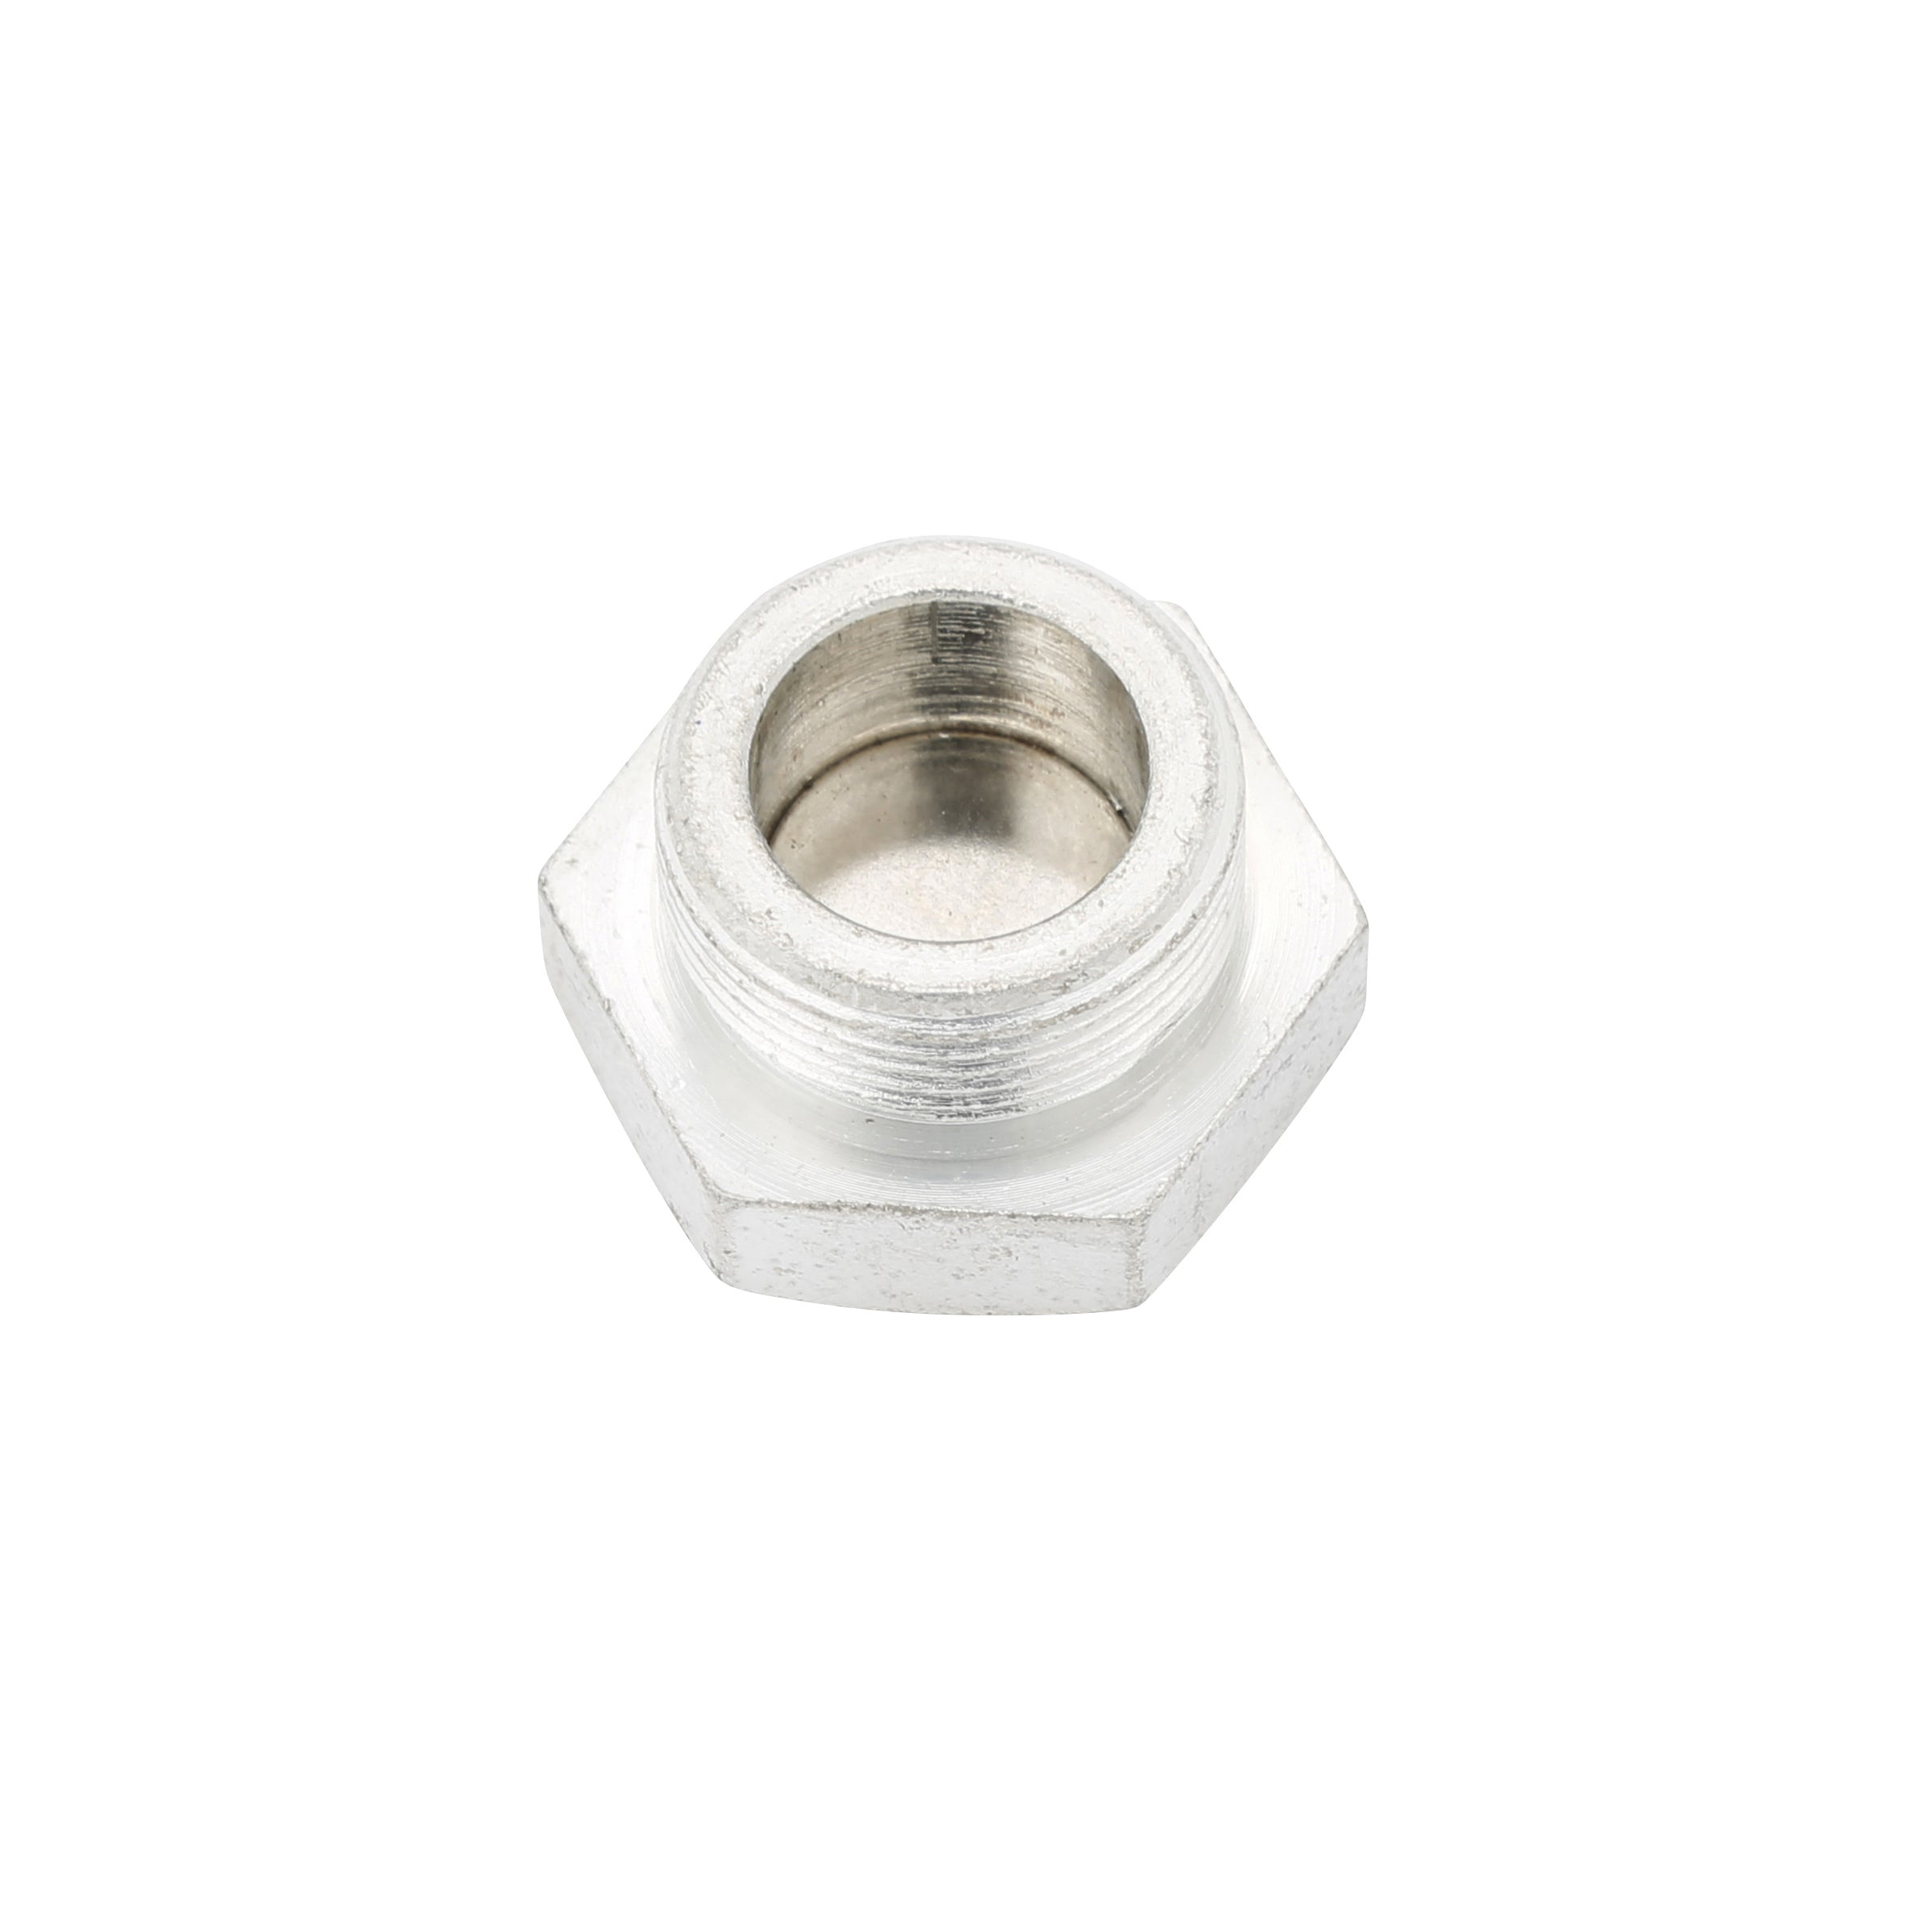 "Oil Pan Drain Plug (3/4"" Magnetic) • 1928-34 Ford"